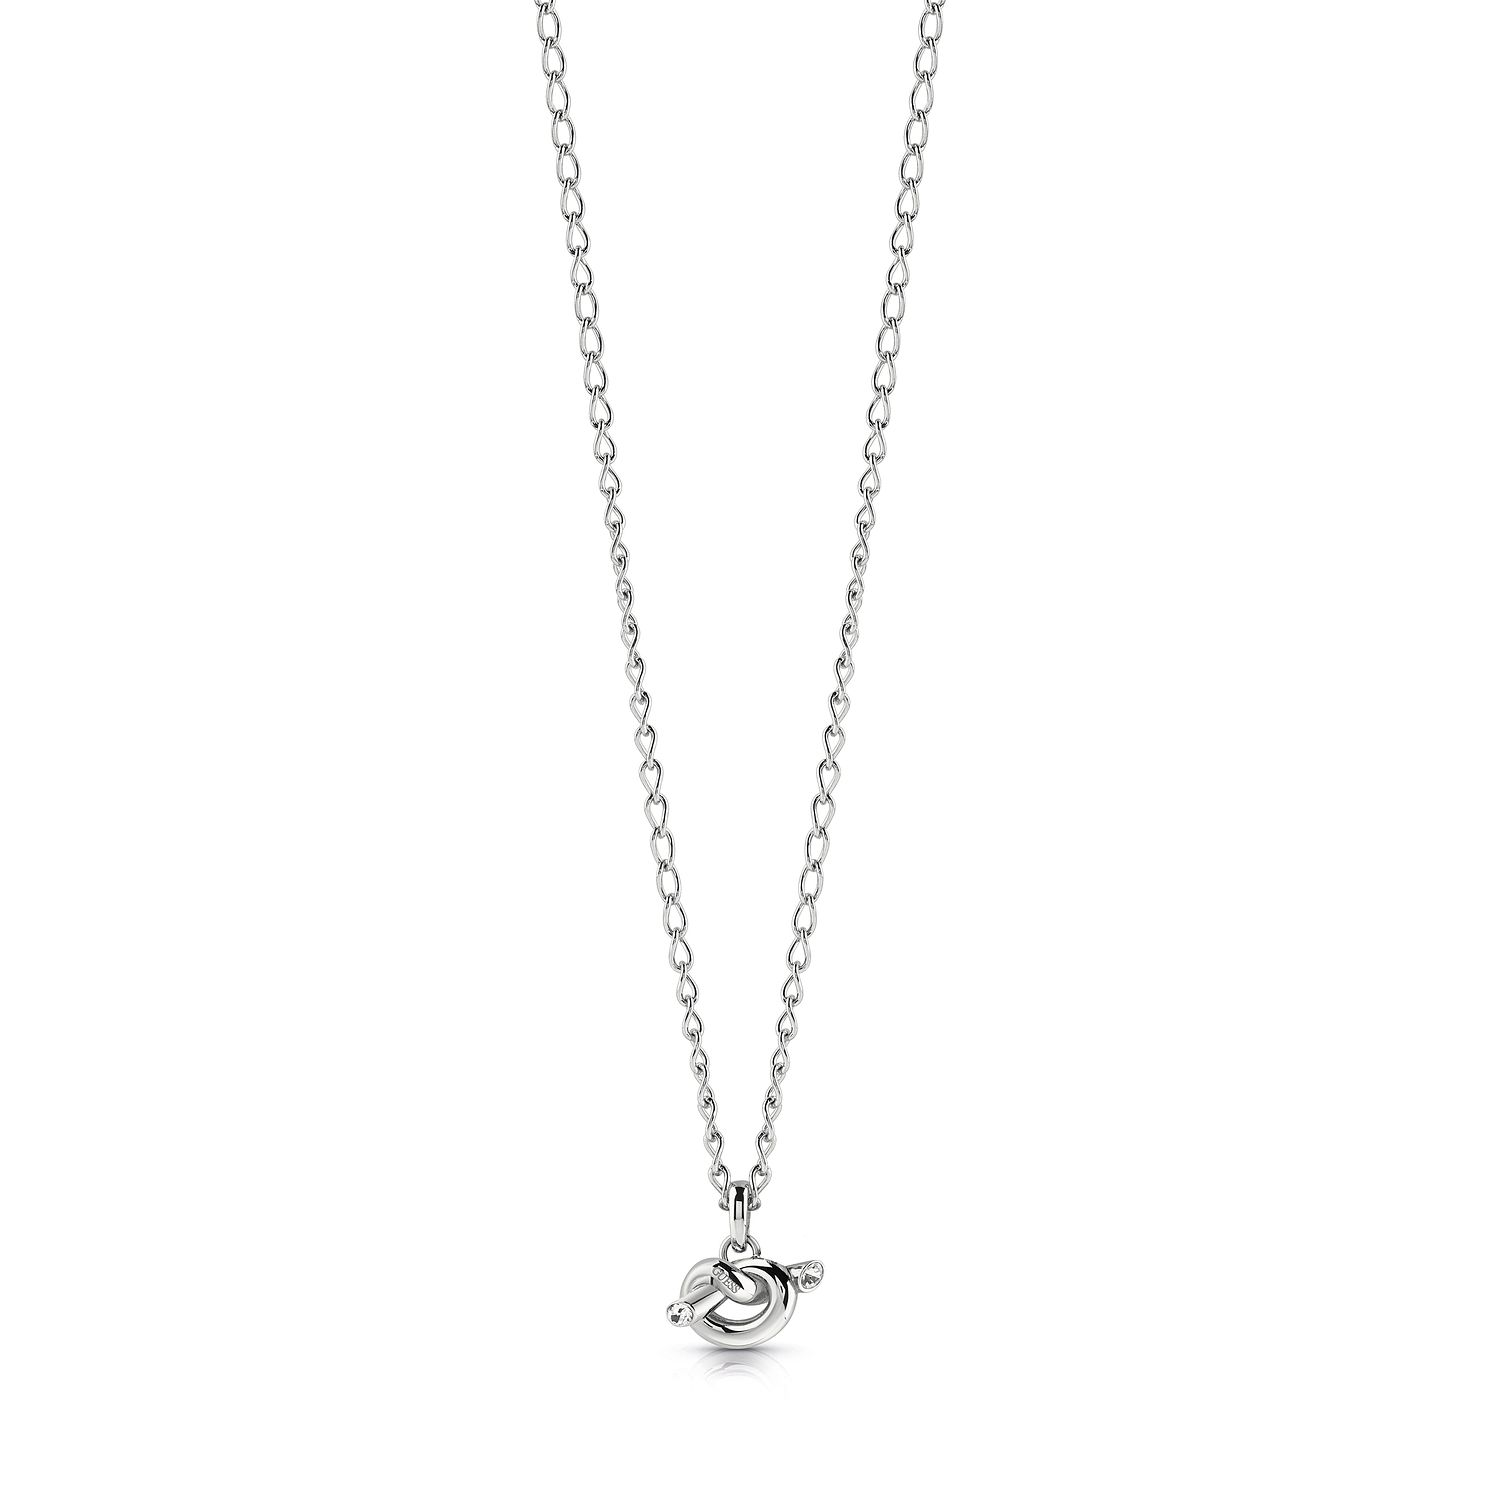 Guess Stainless Steel Swarovski Crystal Knot Necklace - Product number 5922127